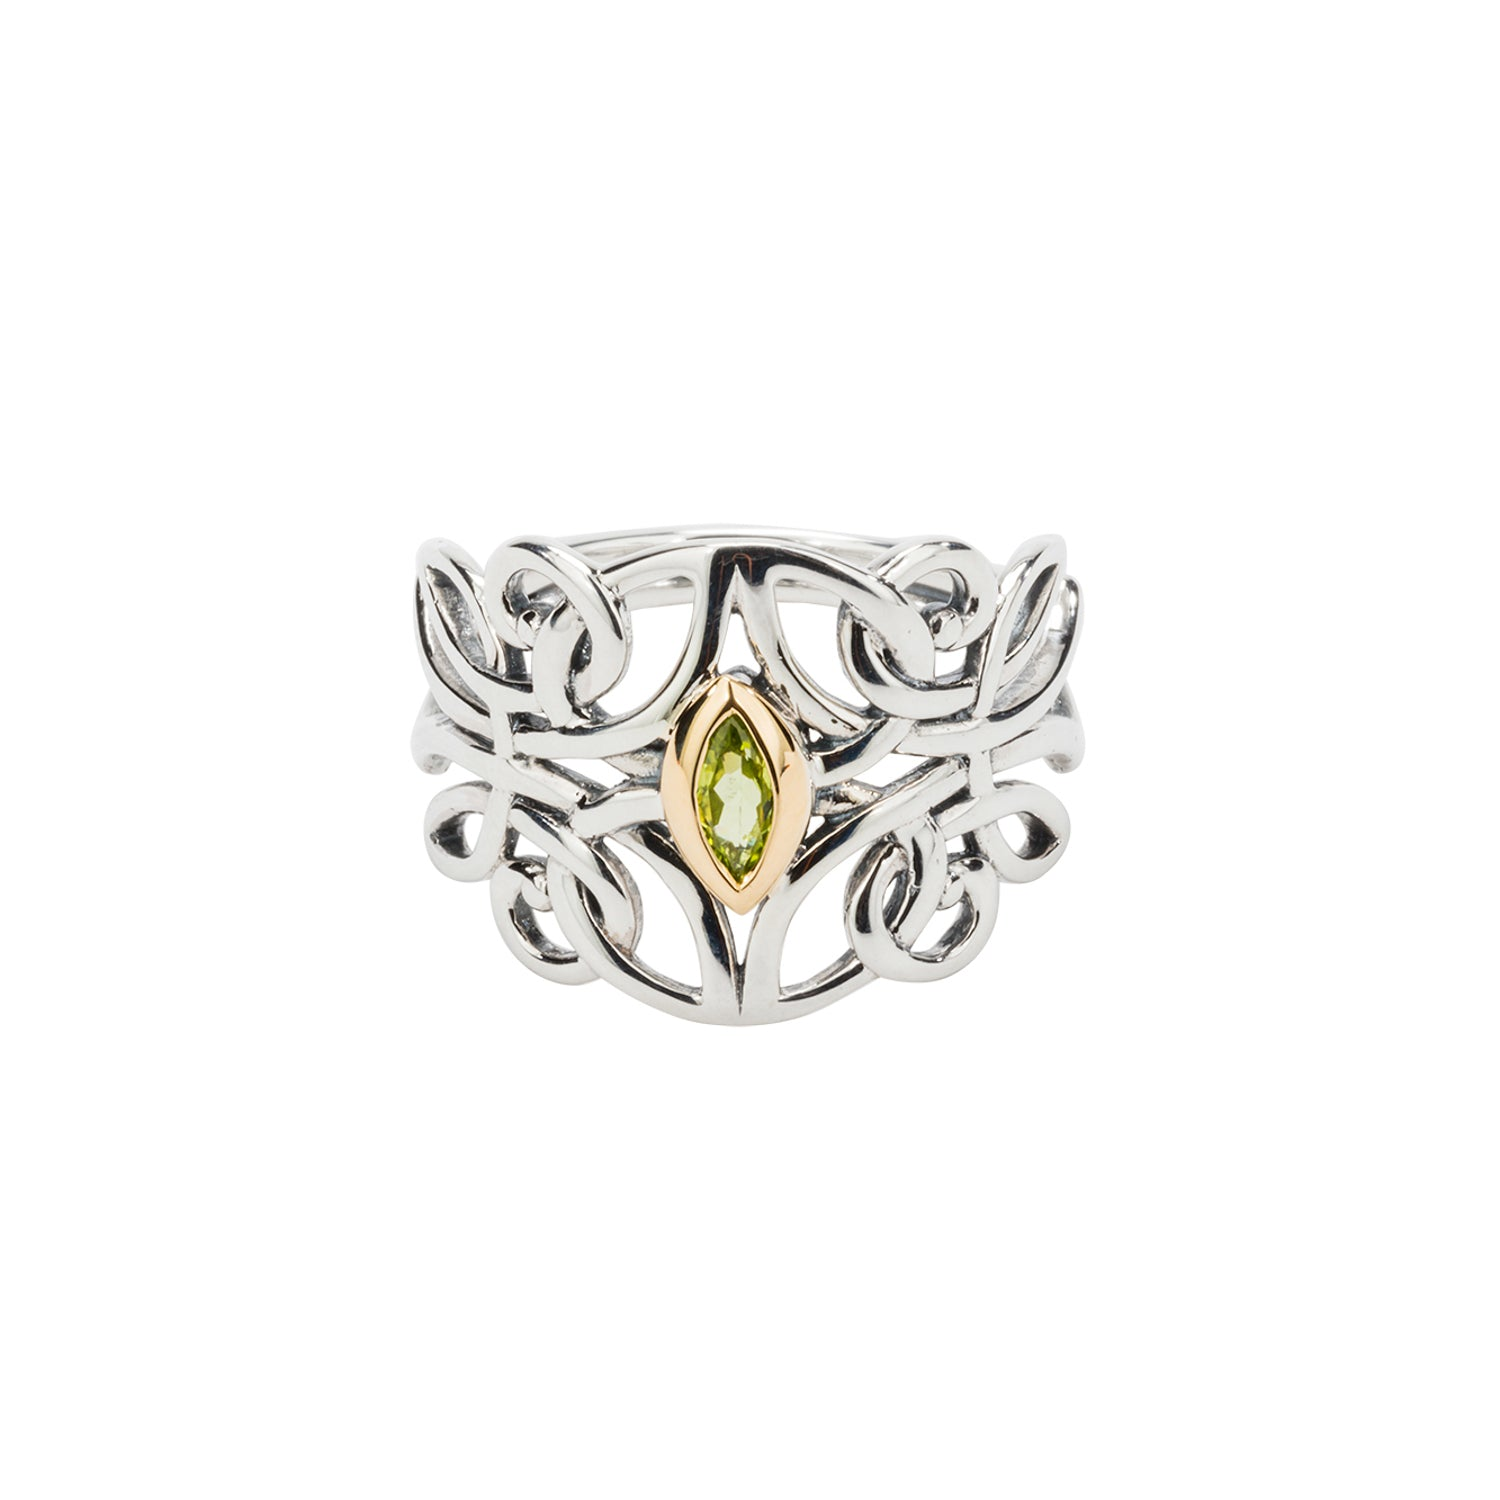 Ring Bands 10k Peridot Guardian Angel Ring from welch and company jewelers near syracuse ny